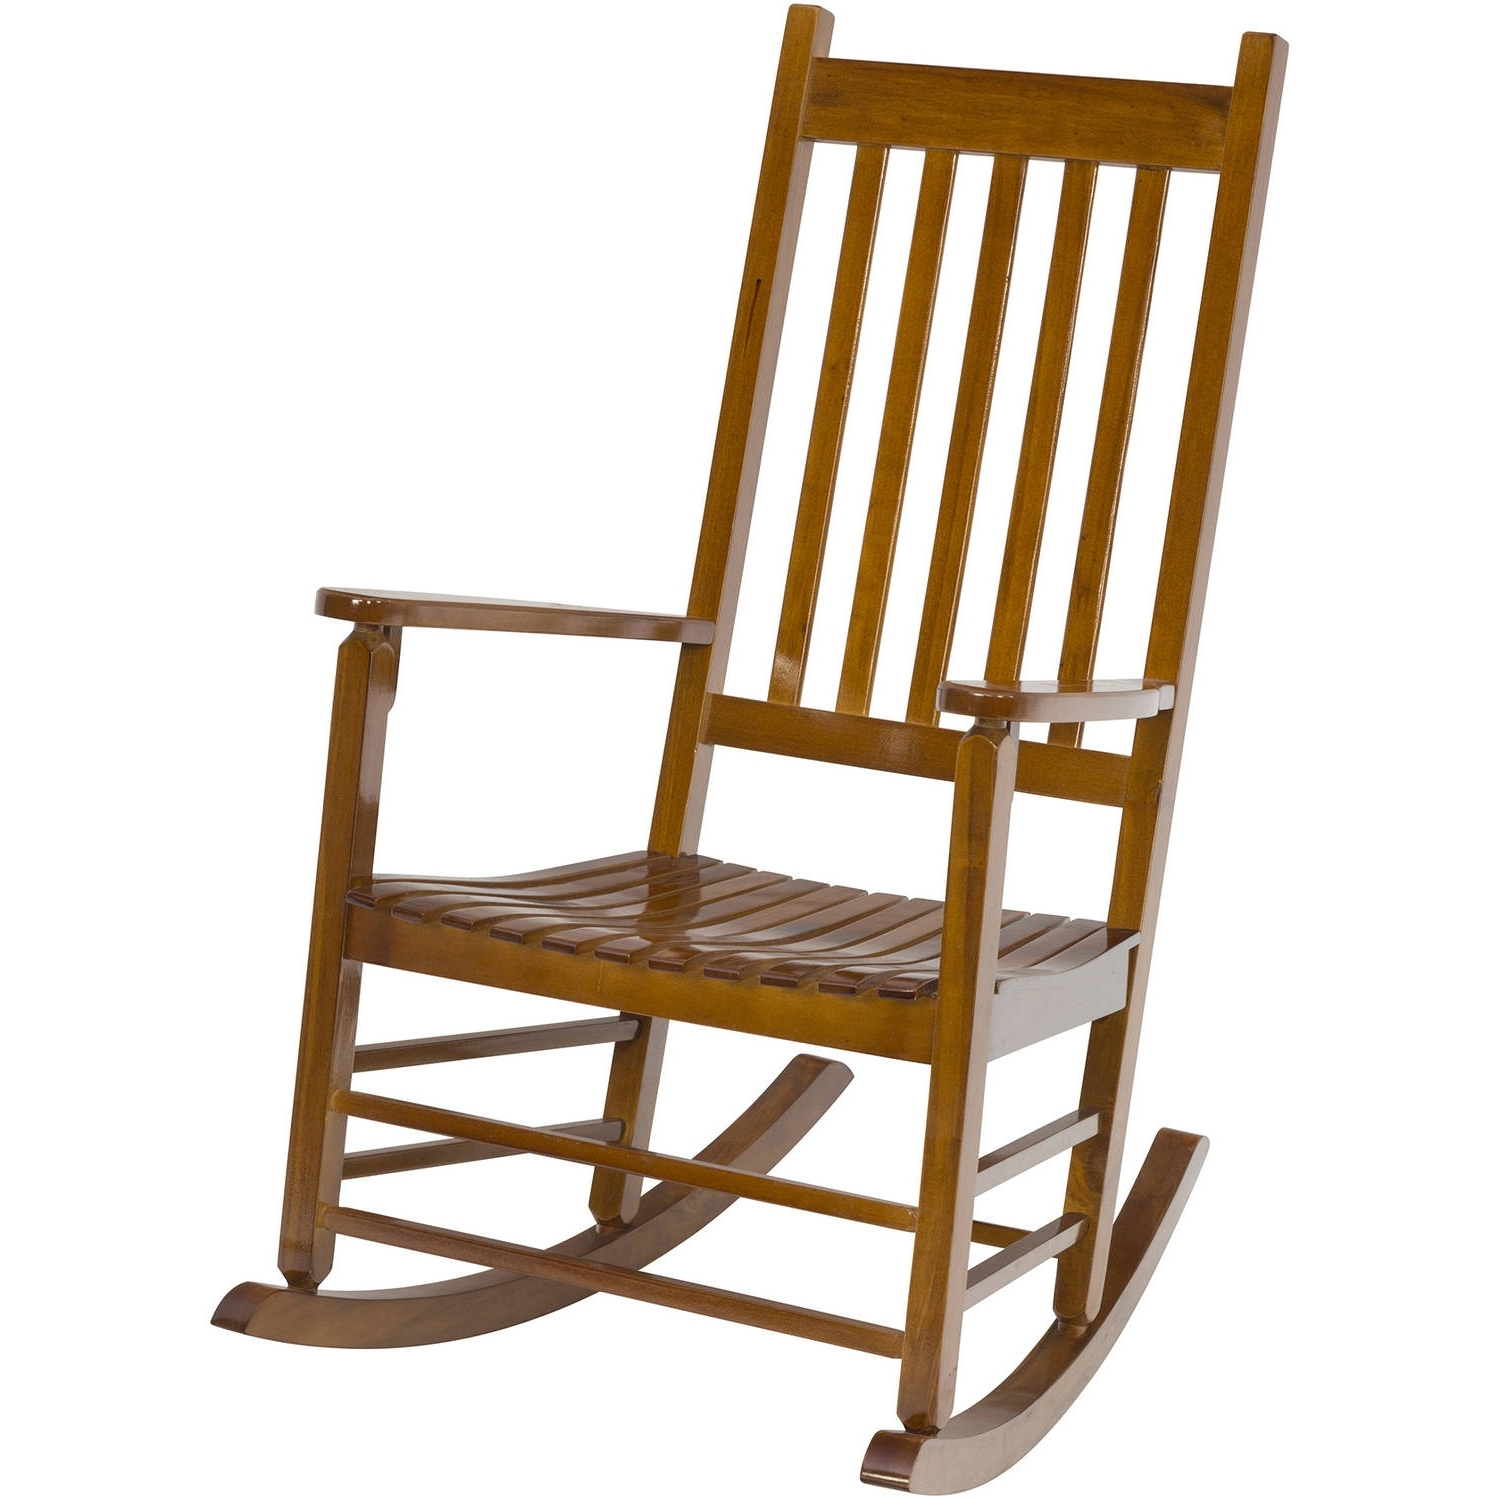 Rocking Chairs At Walmart Throughout Favorite Jack Post Knollwood Rocker With Wicker In Natural – Walmart (View 11 of 15)